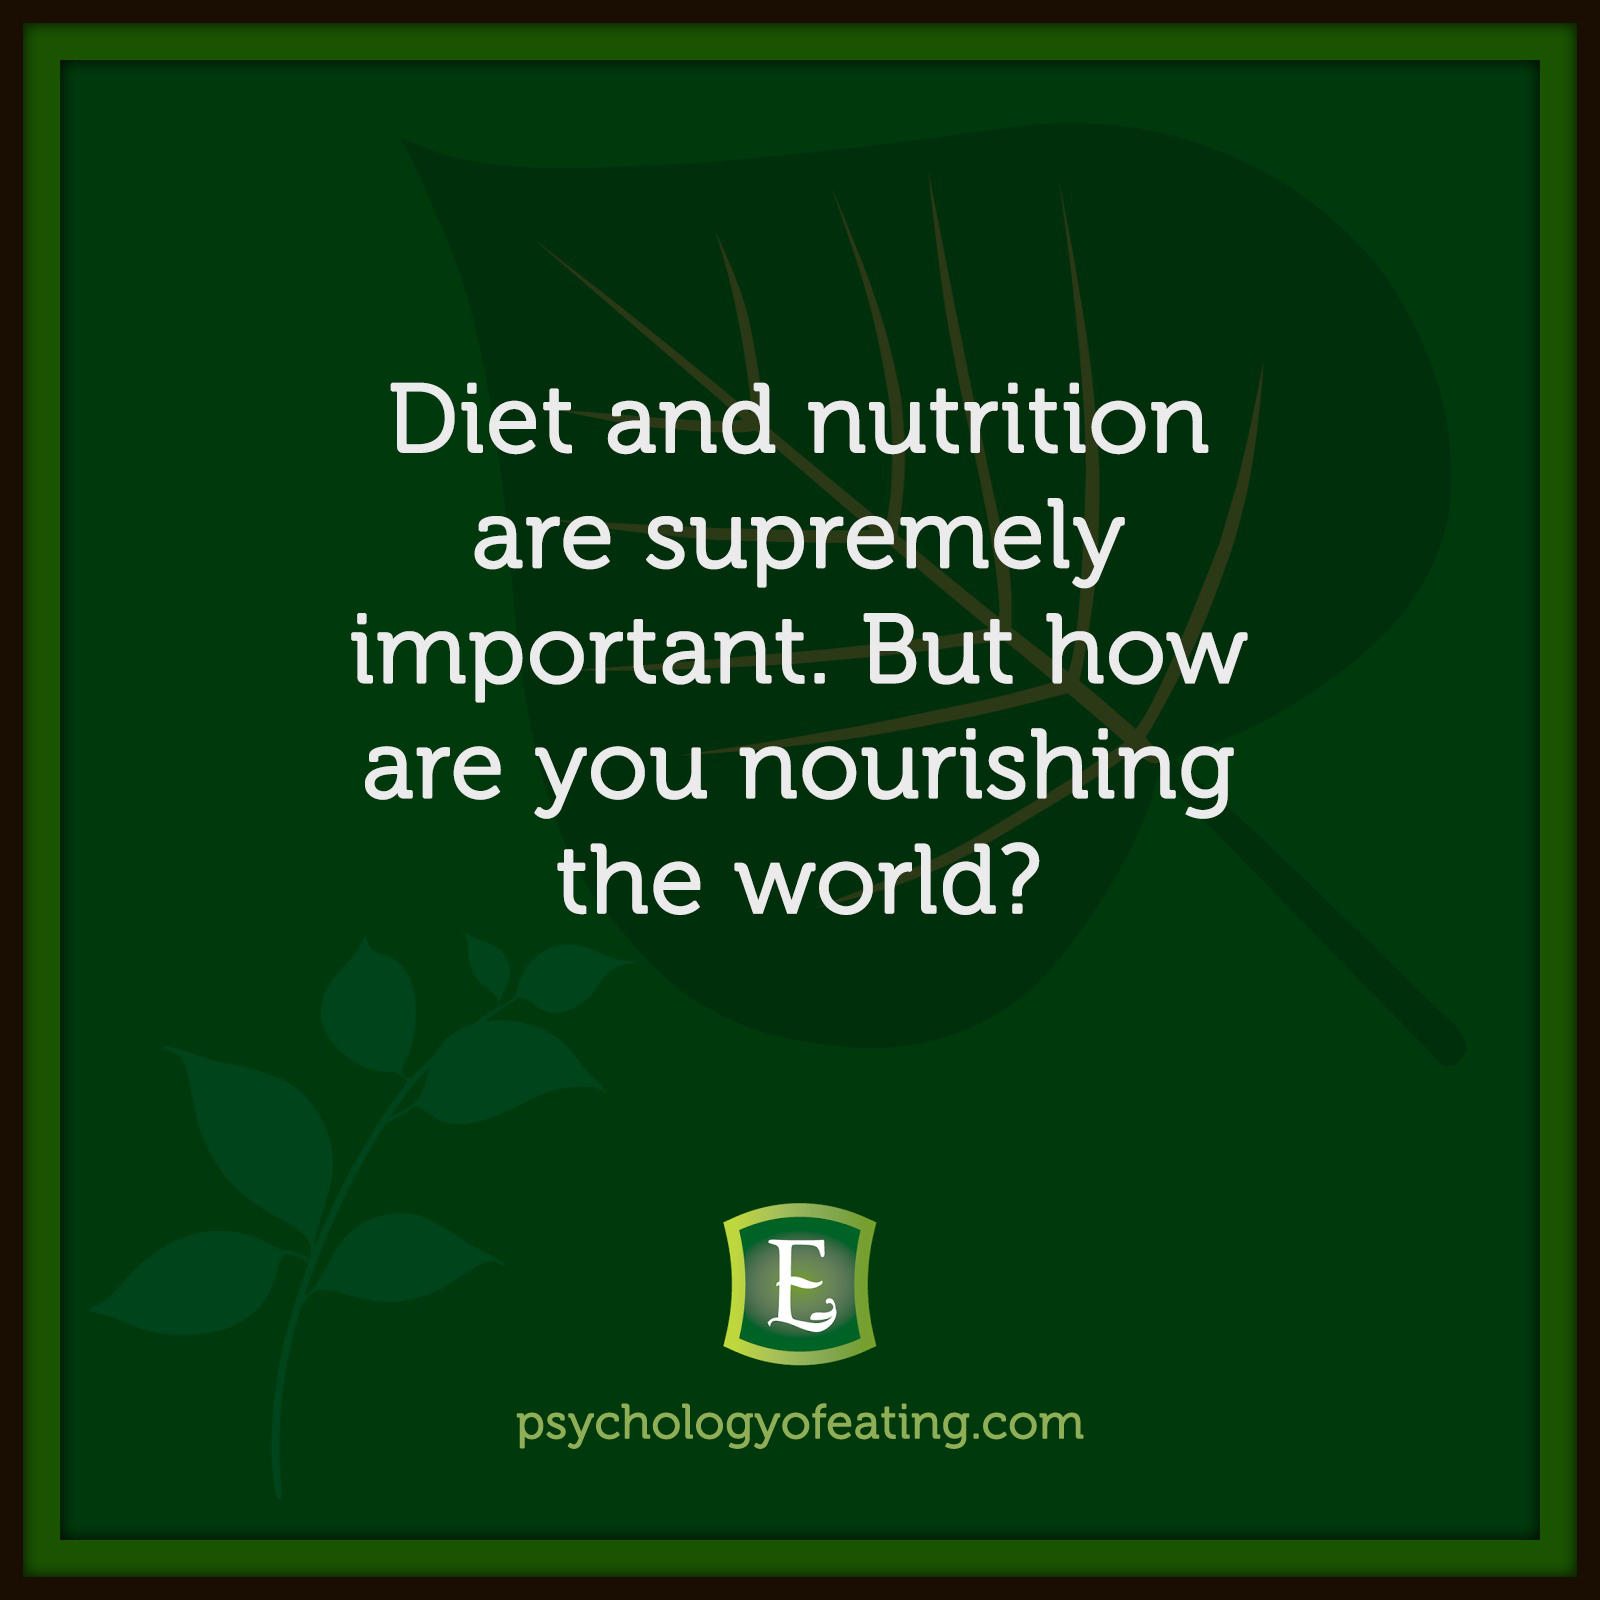 Diet and nutrition are supremely important. But how are you nourishing the world? #health #nutrition #eatingpsychology #IPE